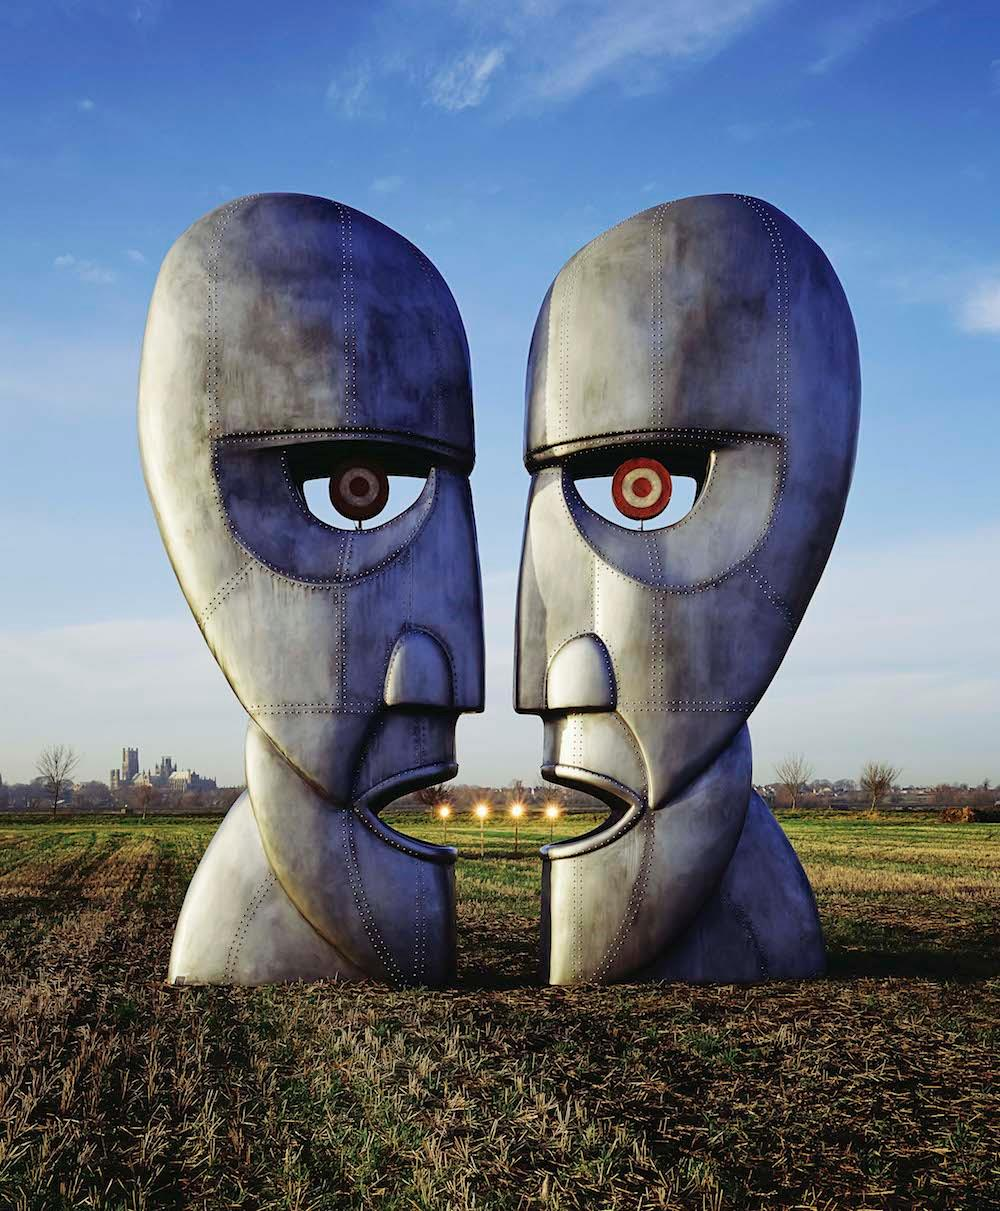 Alternative artwork for Pink Floyd's album Division Bell by Storm Thorgerson